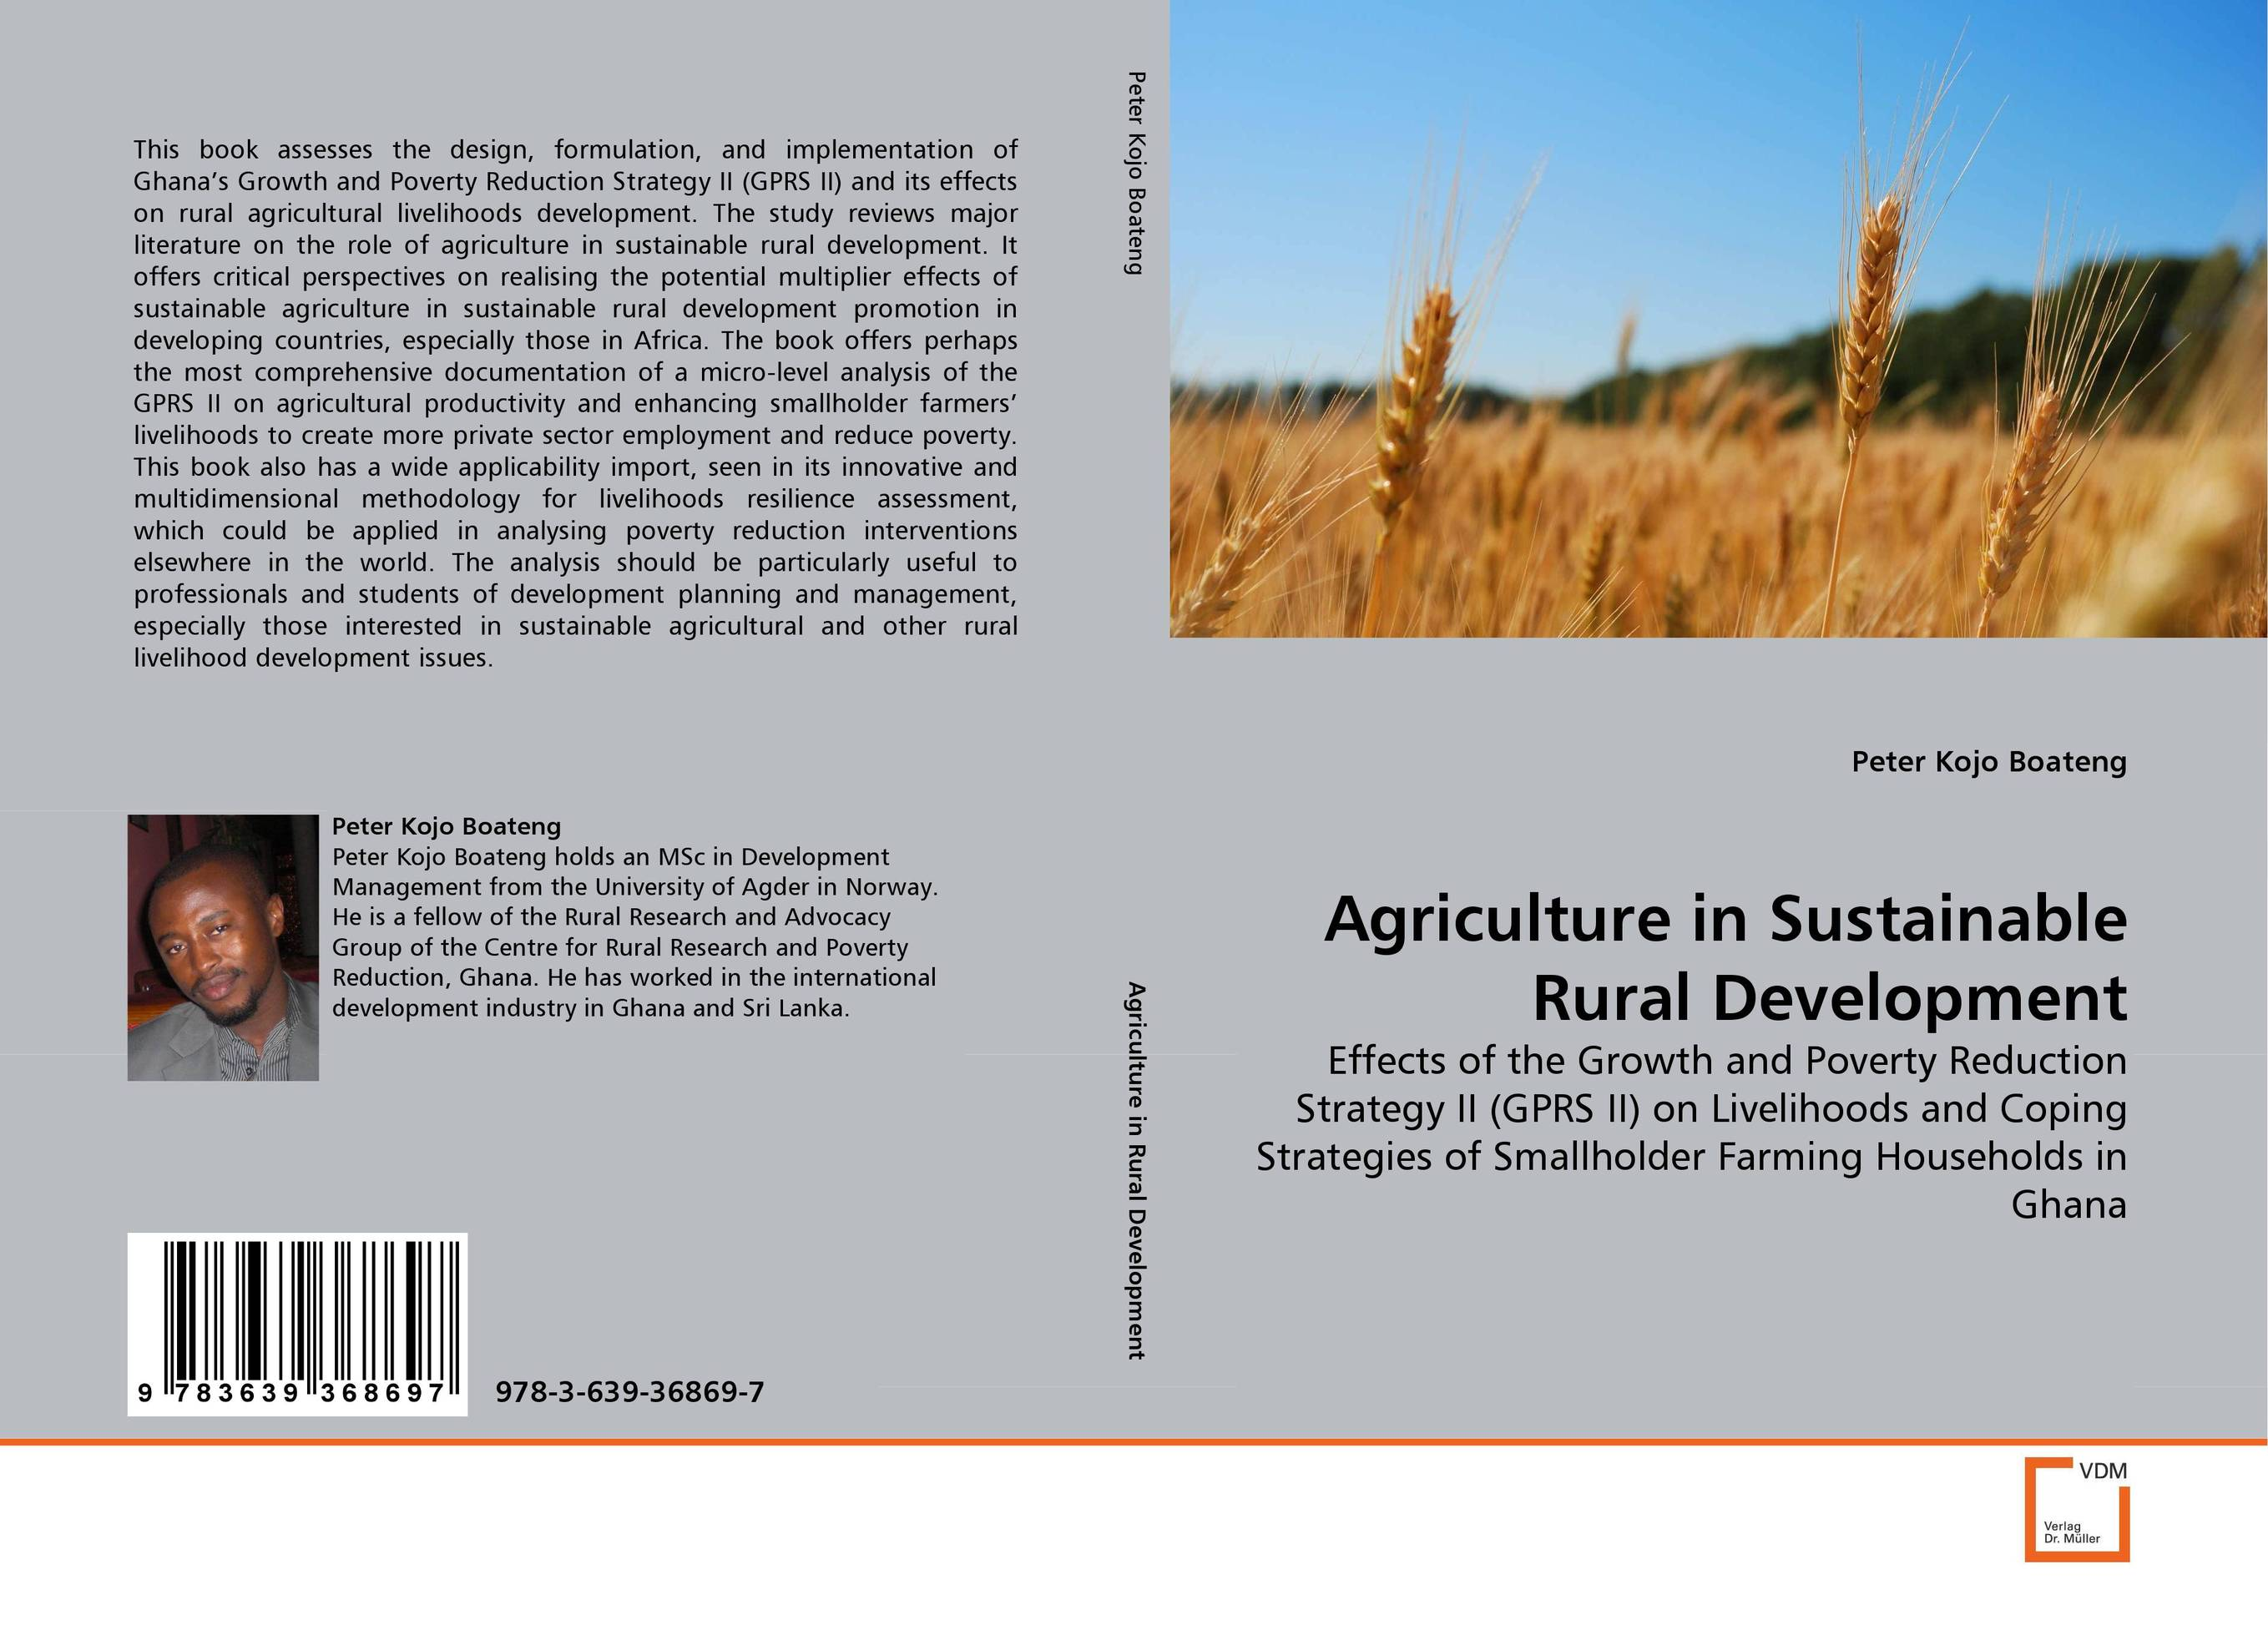 Agriculture in Sustainable Rural Development emerging issues on sustainable urban development